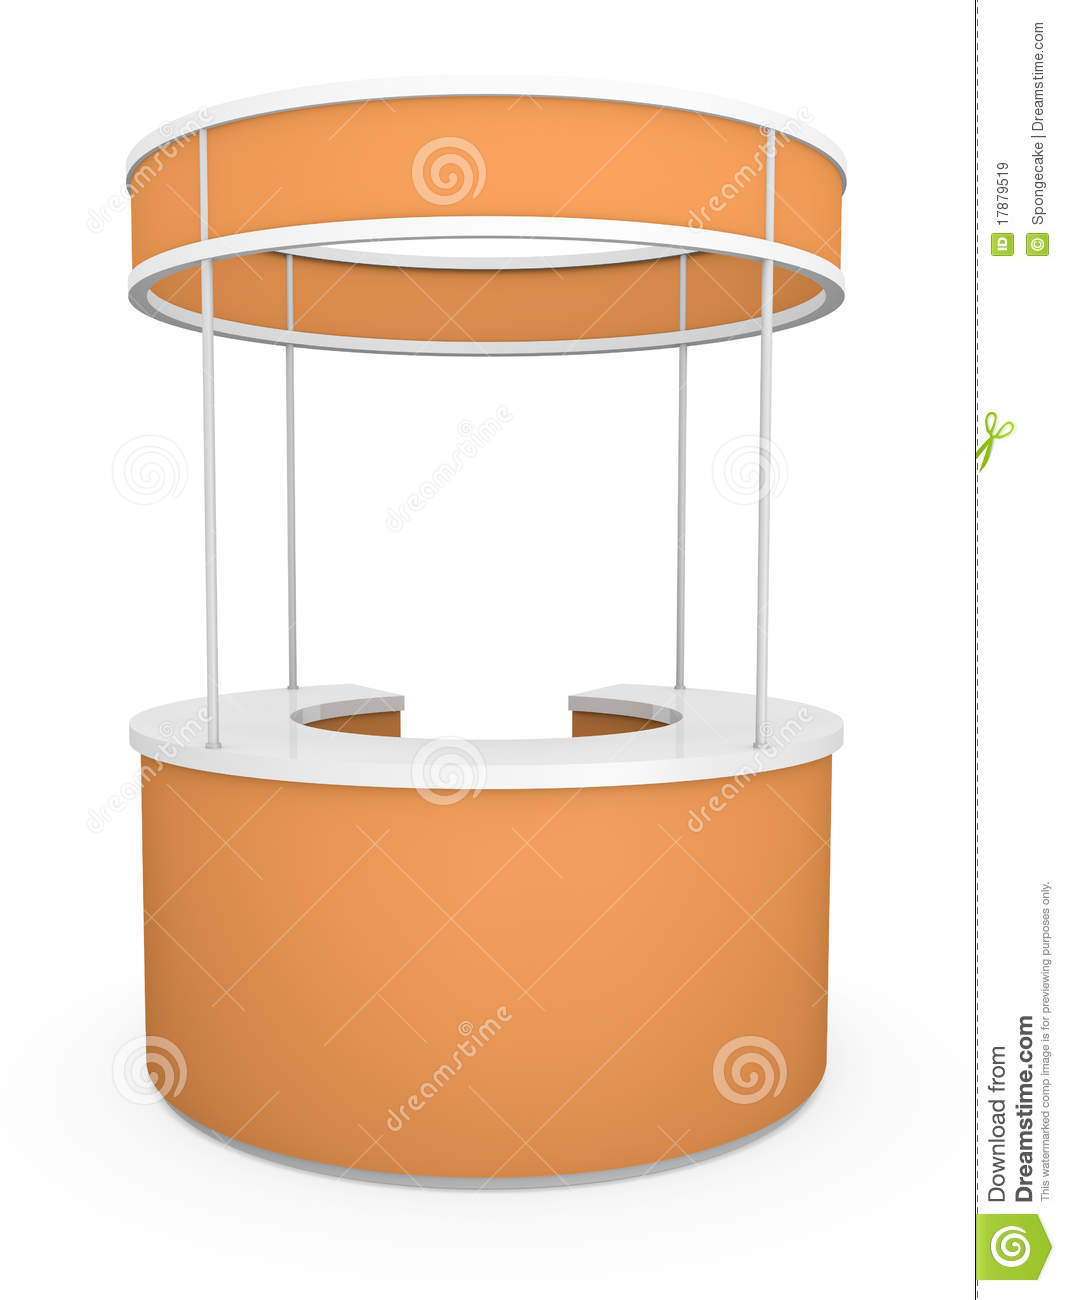 Trade Stands Hoys : Trade stand royalty free stock images image